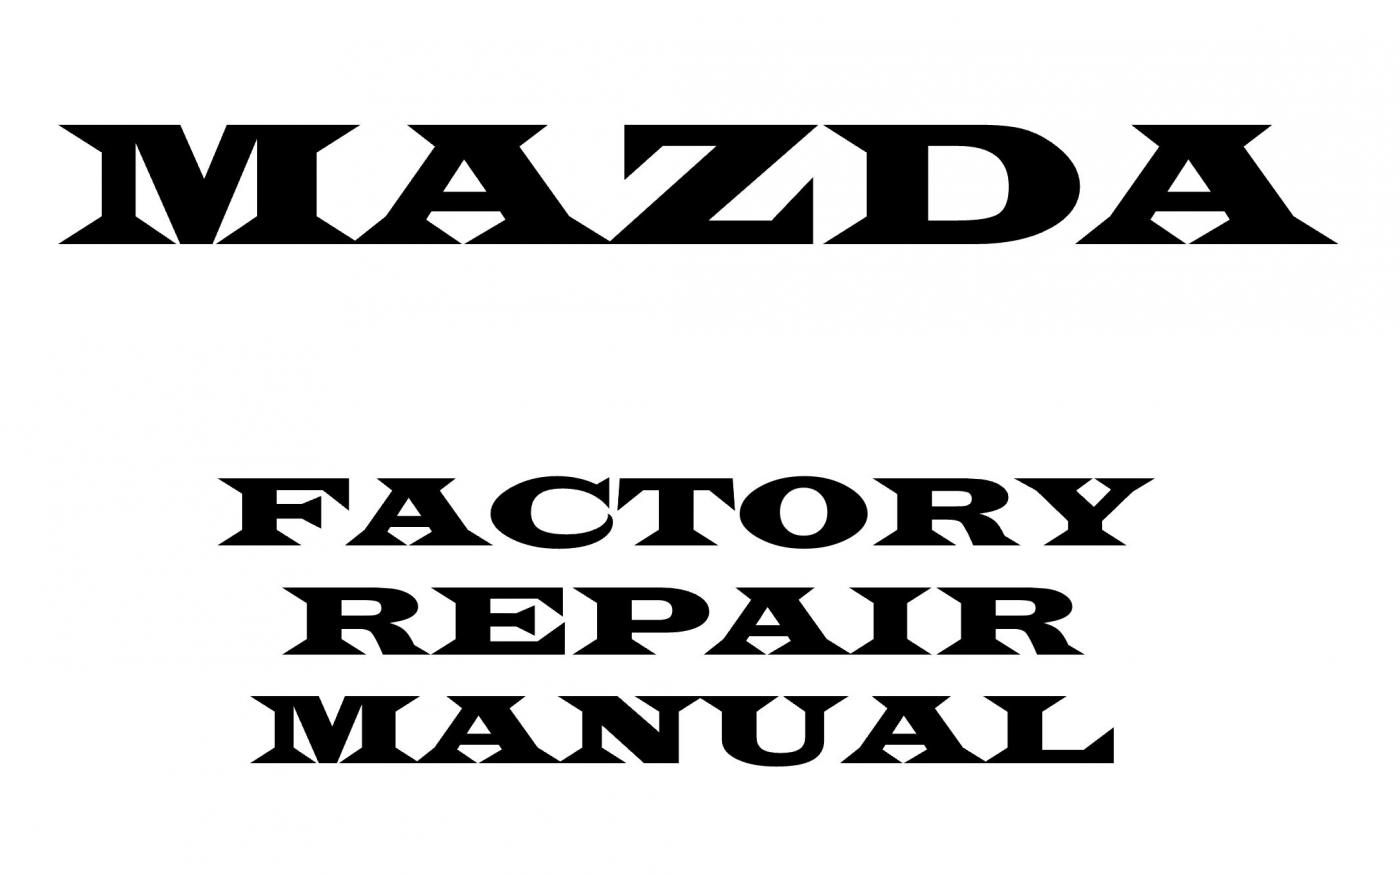 Mazda B SERIES 2007 2008 repair manual